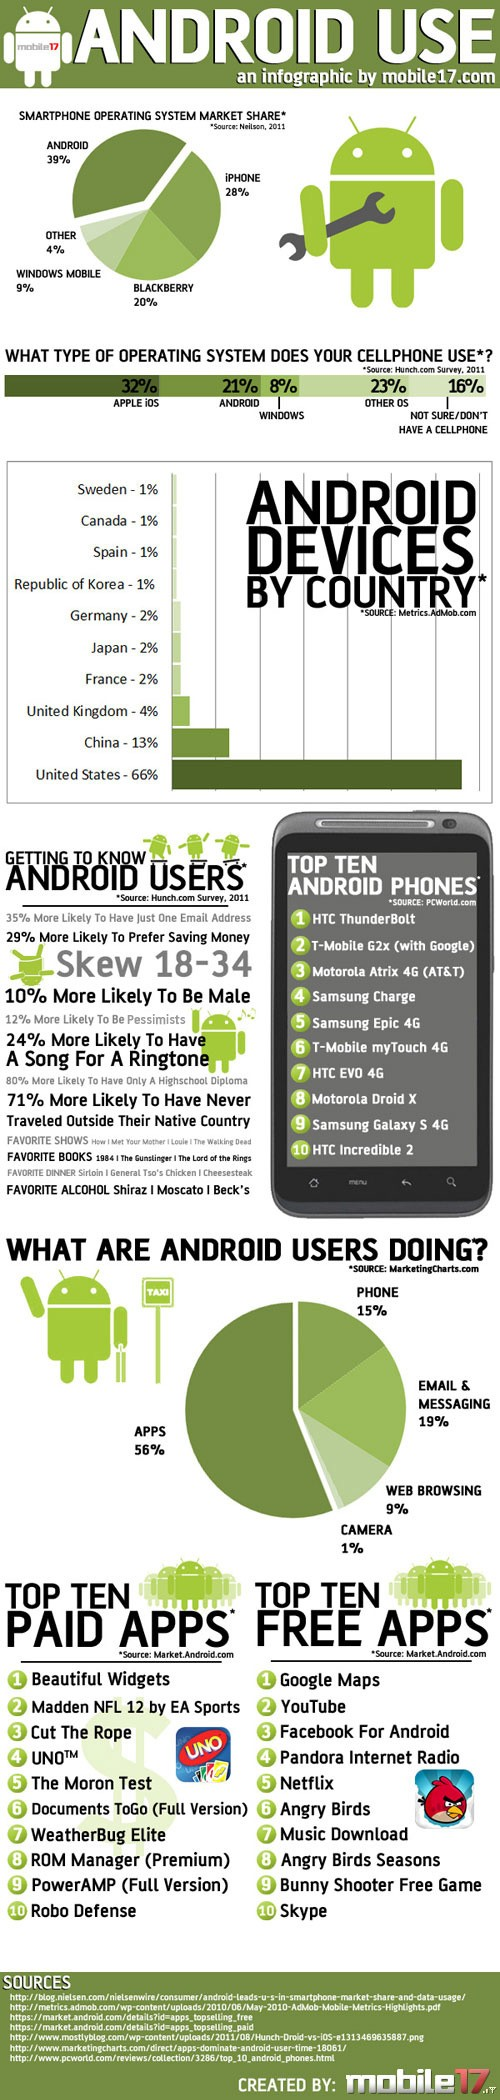 AndroidUseInfographic